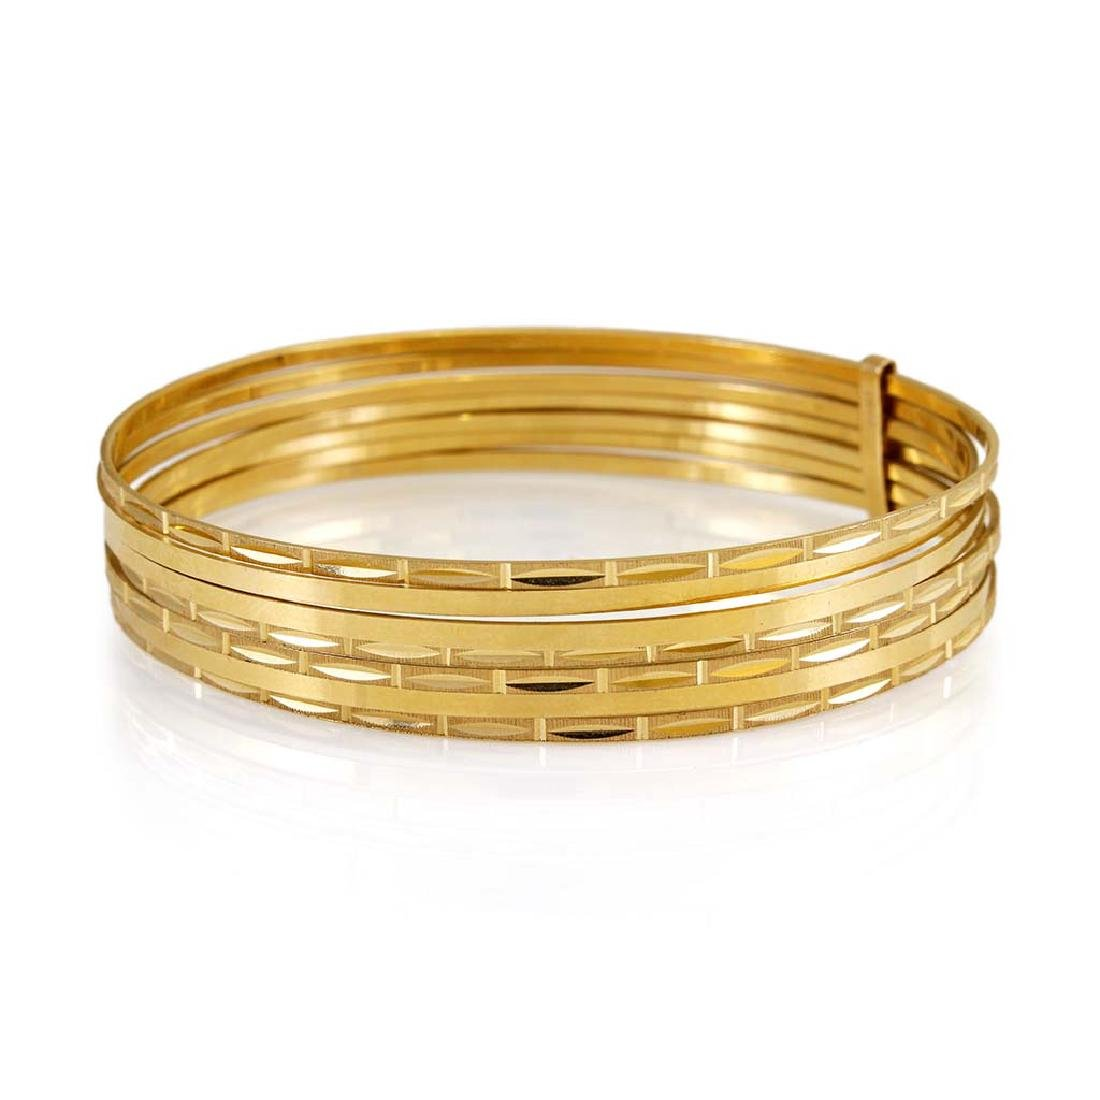 14K Yellow Gold 7 Day Slip-on Bangle Bracelet